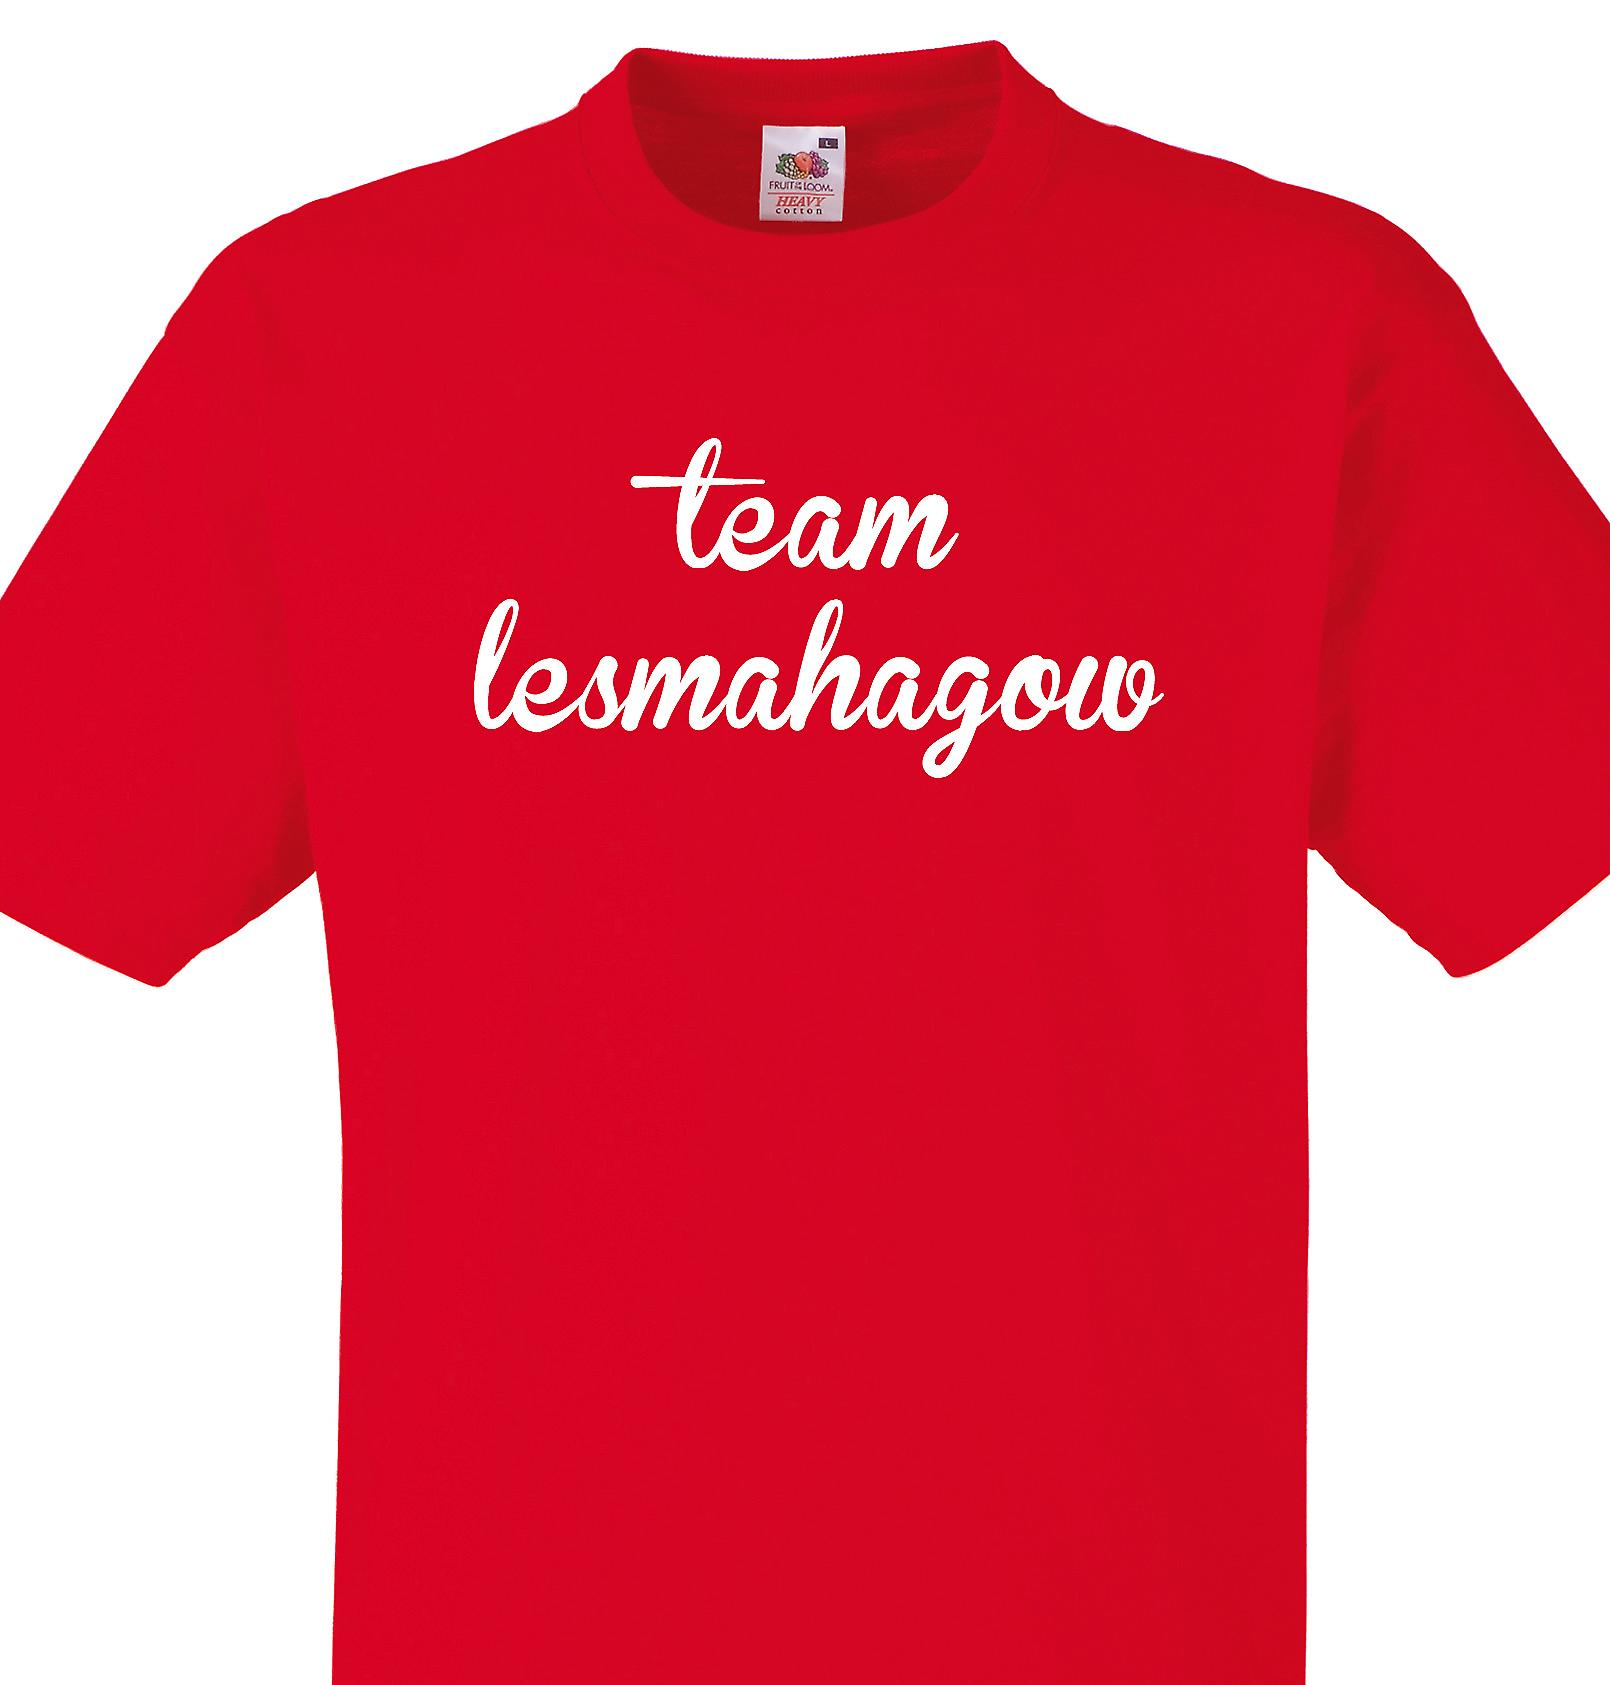 Team Lesmahagow Red T shirt